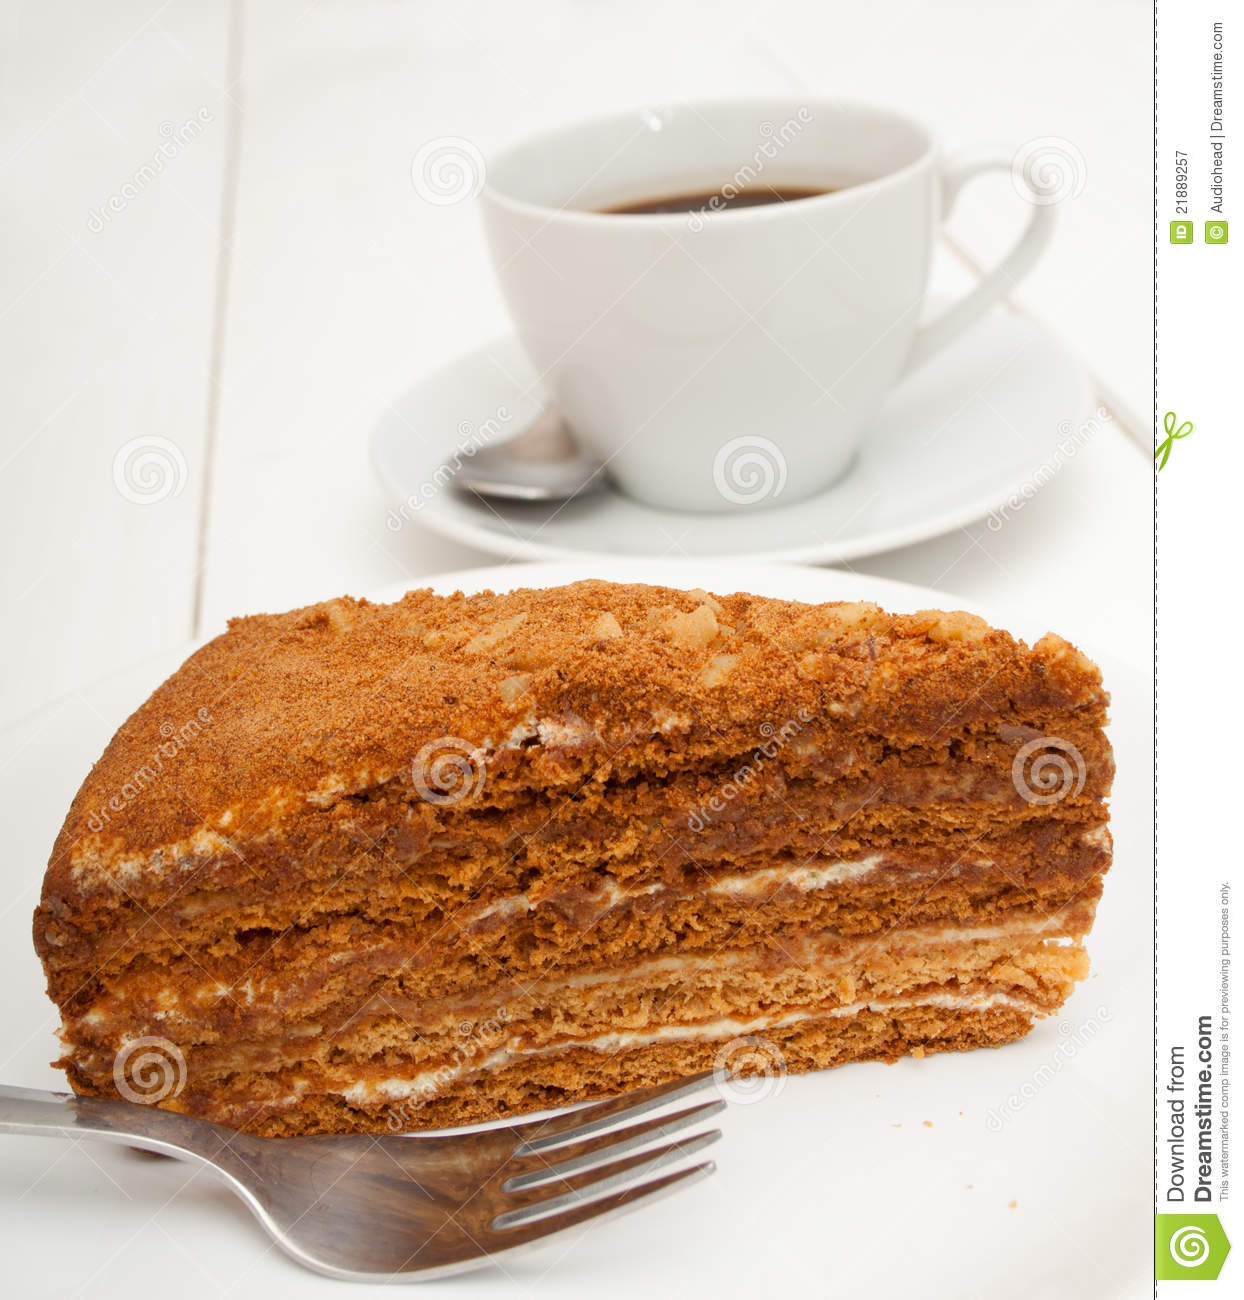 Clipart Of Honey Cake : Honey Cake Royalty Free Stock Photography - Image: 21889257